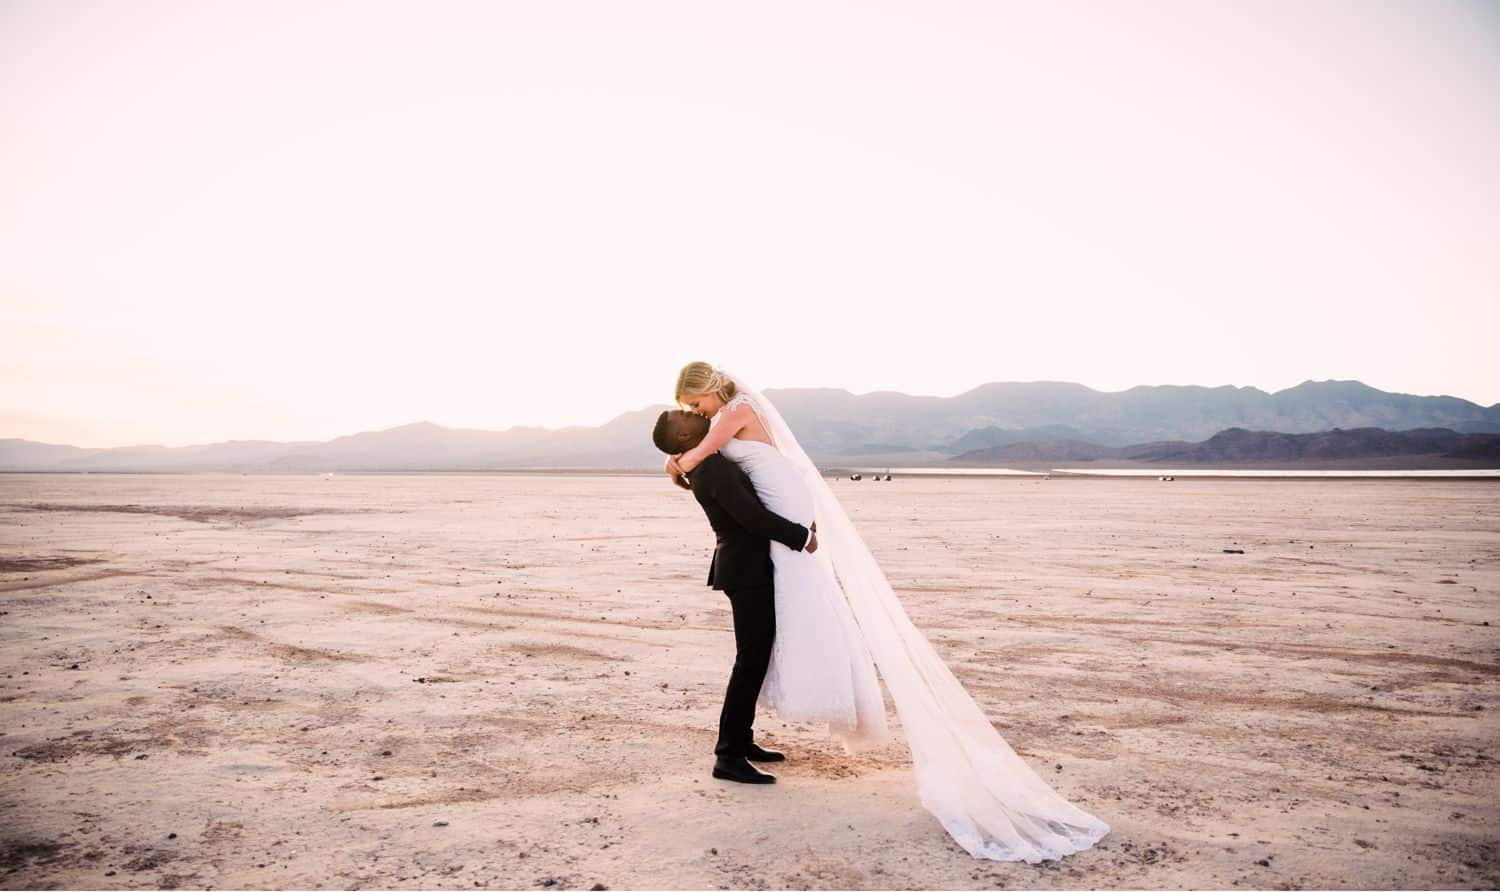 The groom lifts his bride into the air for a kiss after their desert ceremony